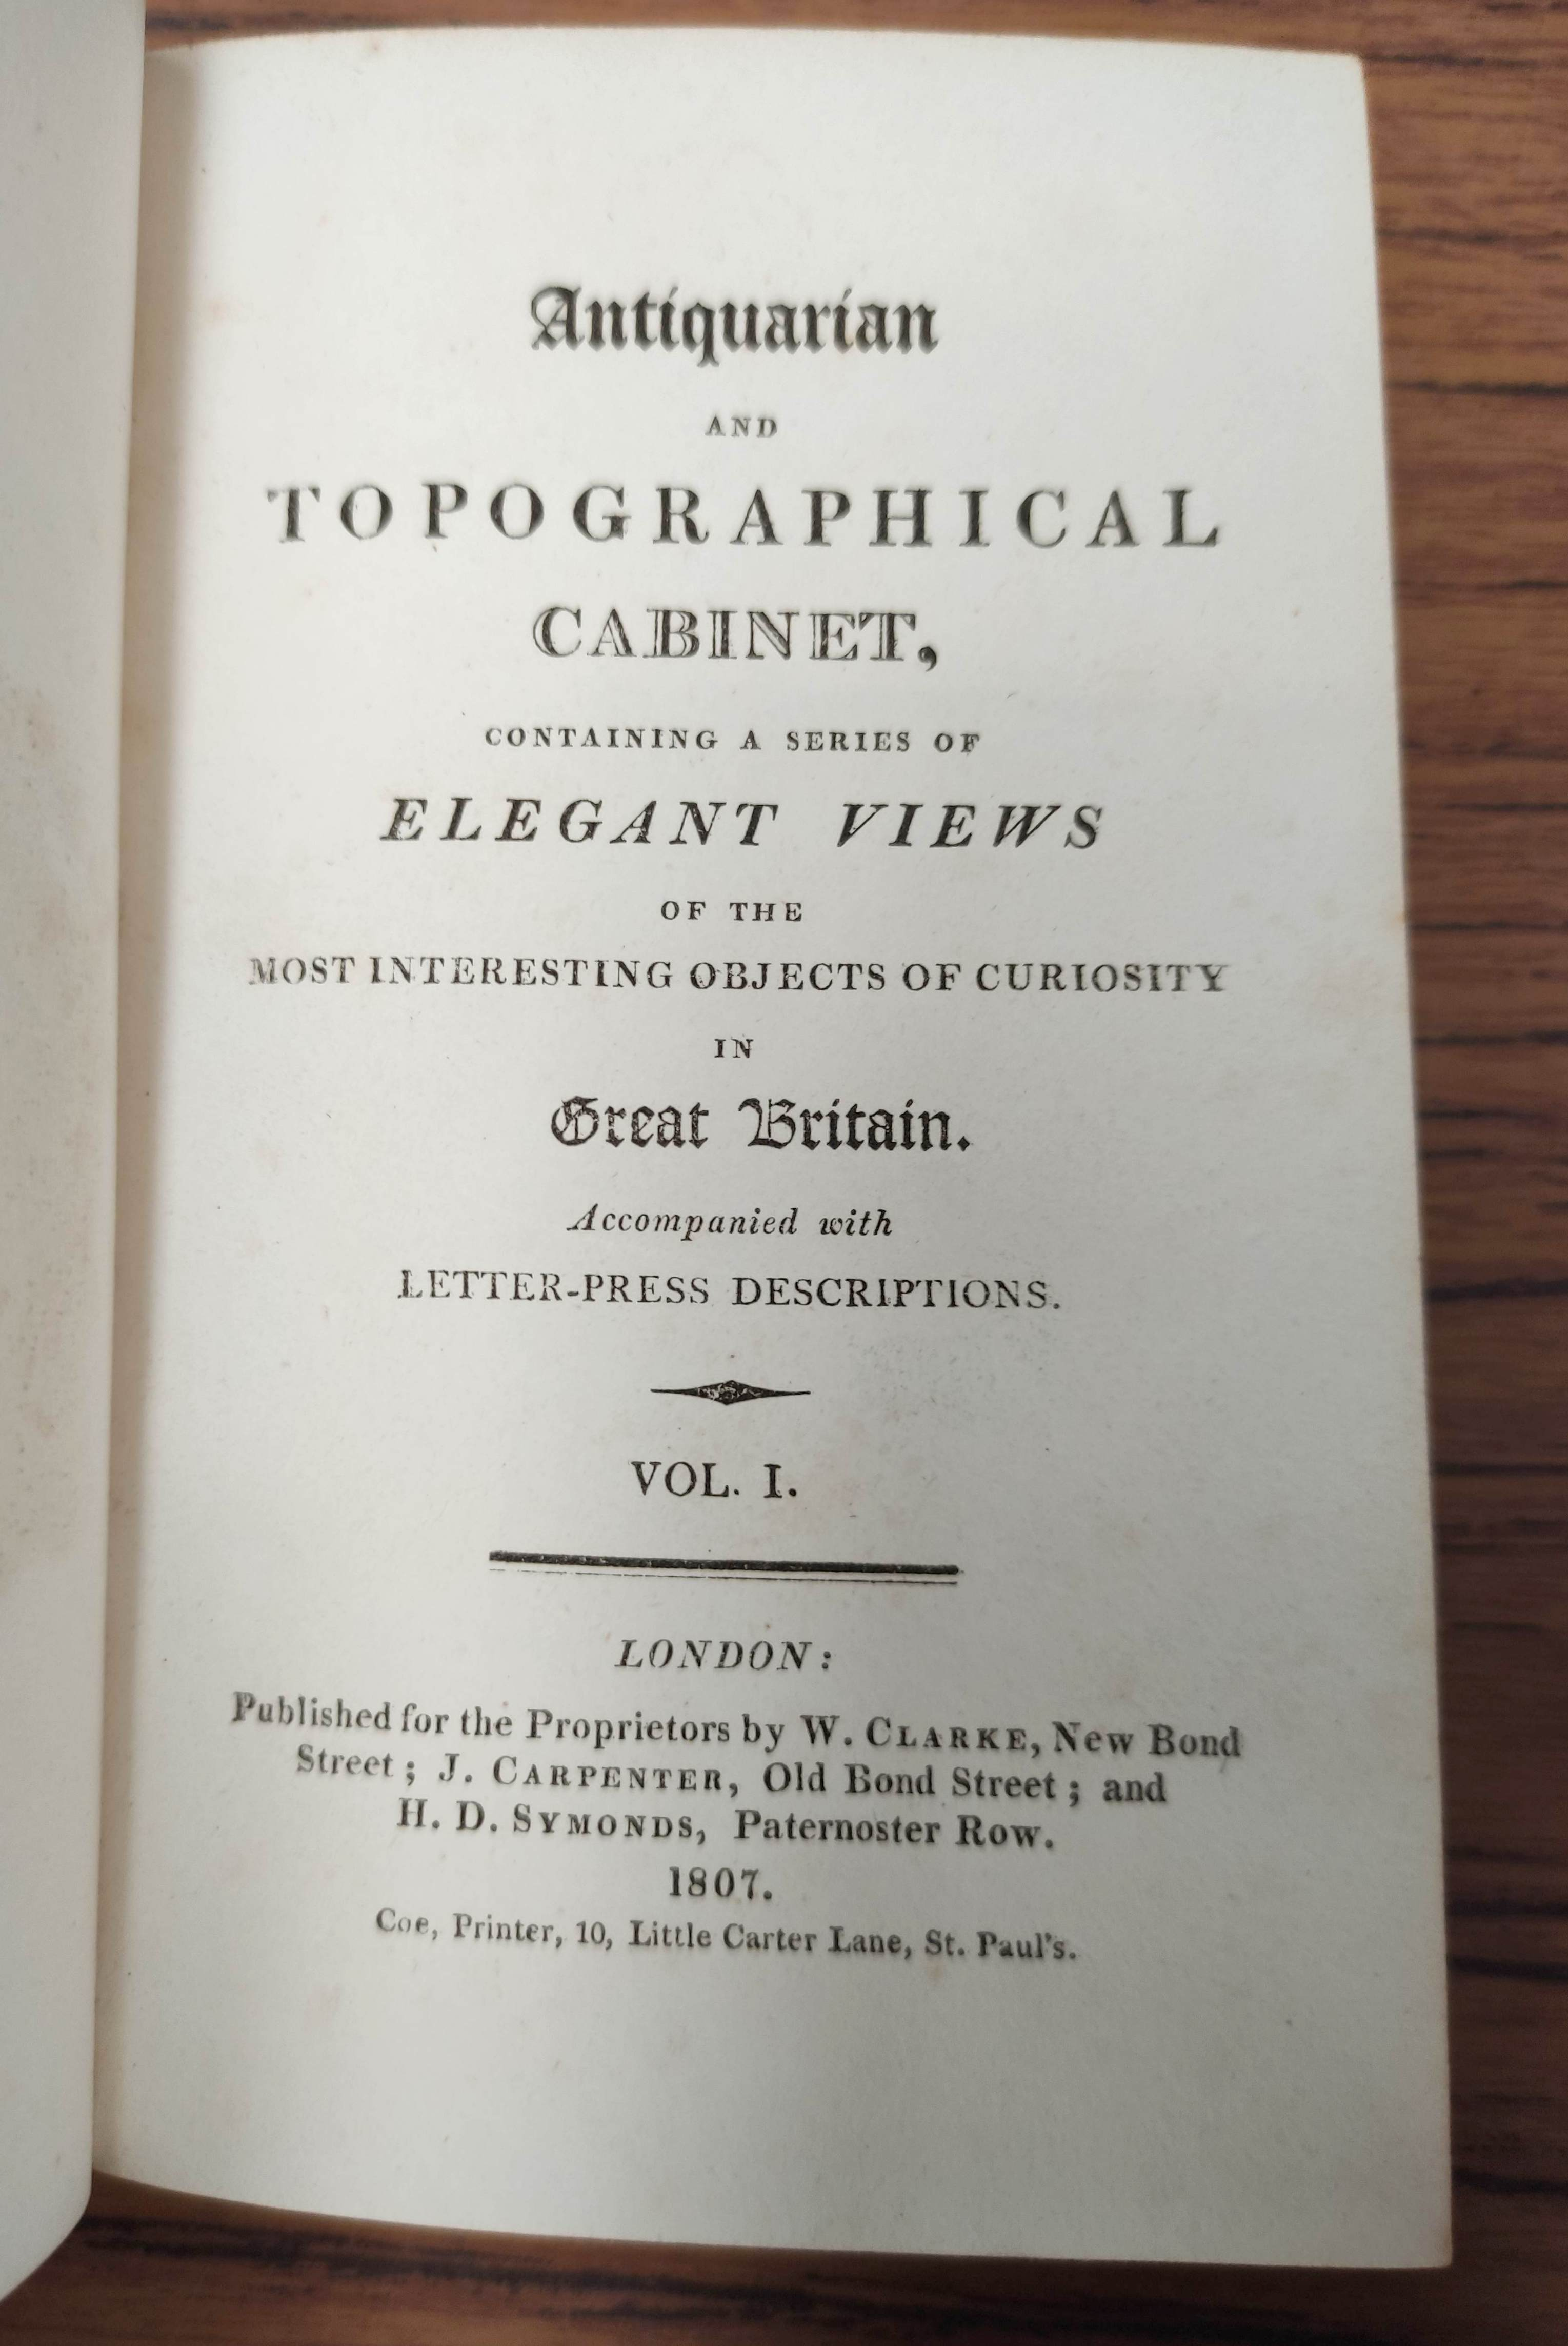 STORER J. & GREIG I.Antiquarian & Topographical Cabinet Containing a Series of Elegant Views ... - Image 4 of 8